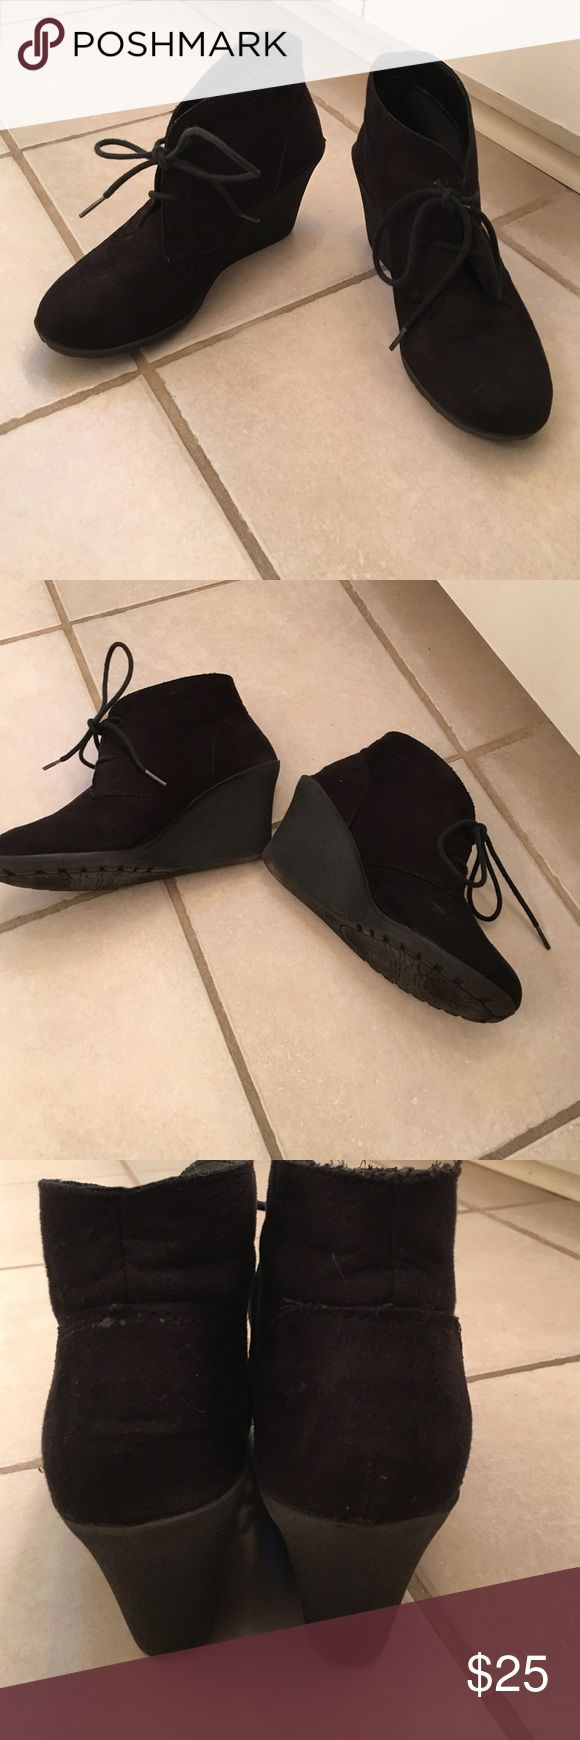 White mountain black booties size 8 black White mountain black booties size 8 black gently used! Black shoe laces that tie and adjust! White Mountaineering Shoes Ankle Boots & Booties